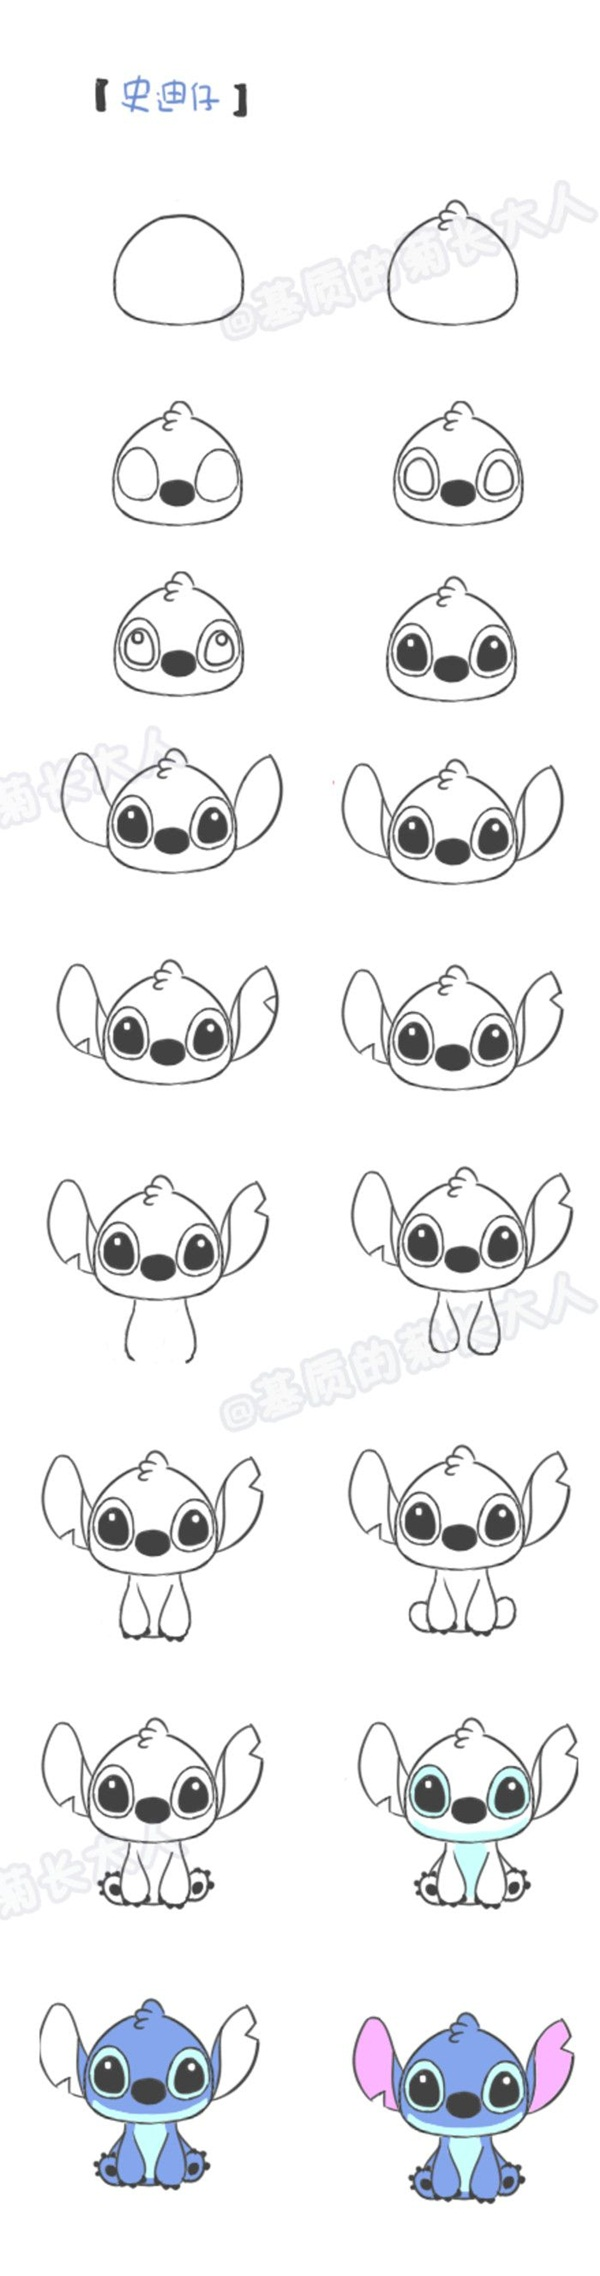 The creature from the pikachu is popular among all kids and is a must draw cartoon character